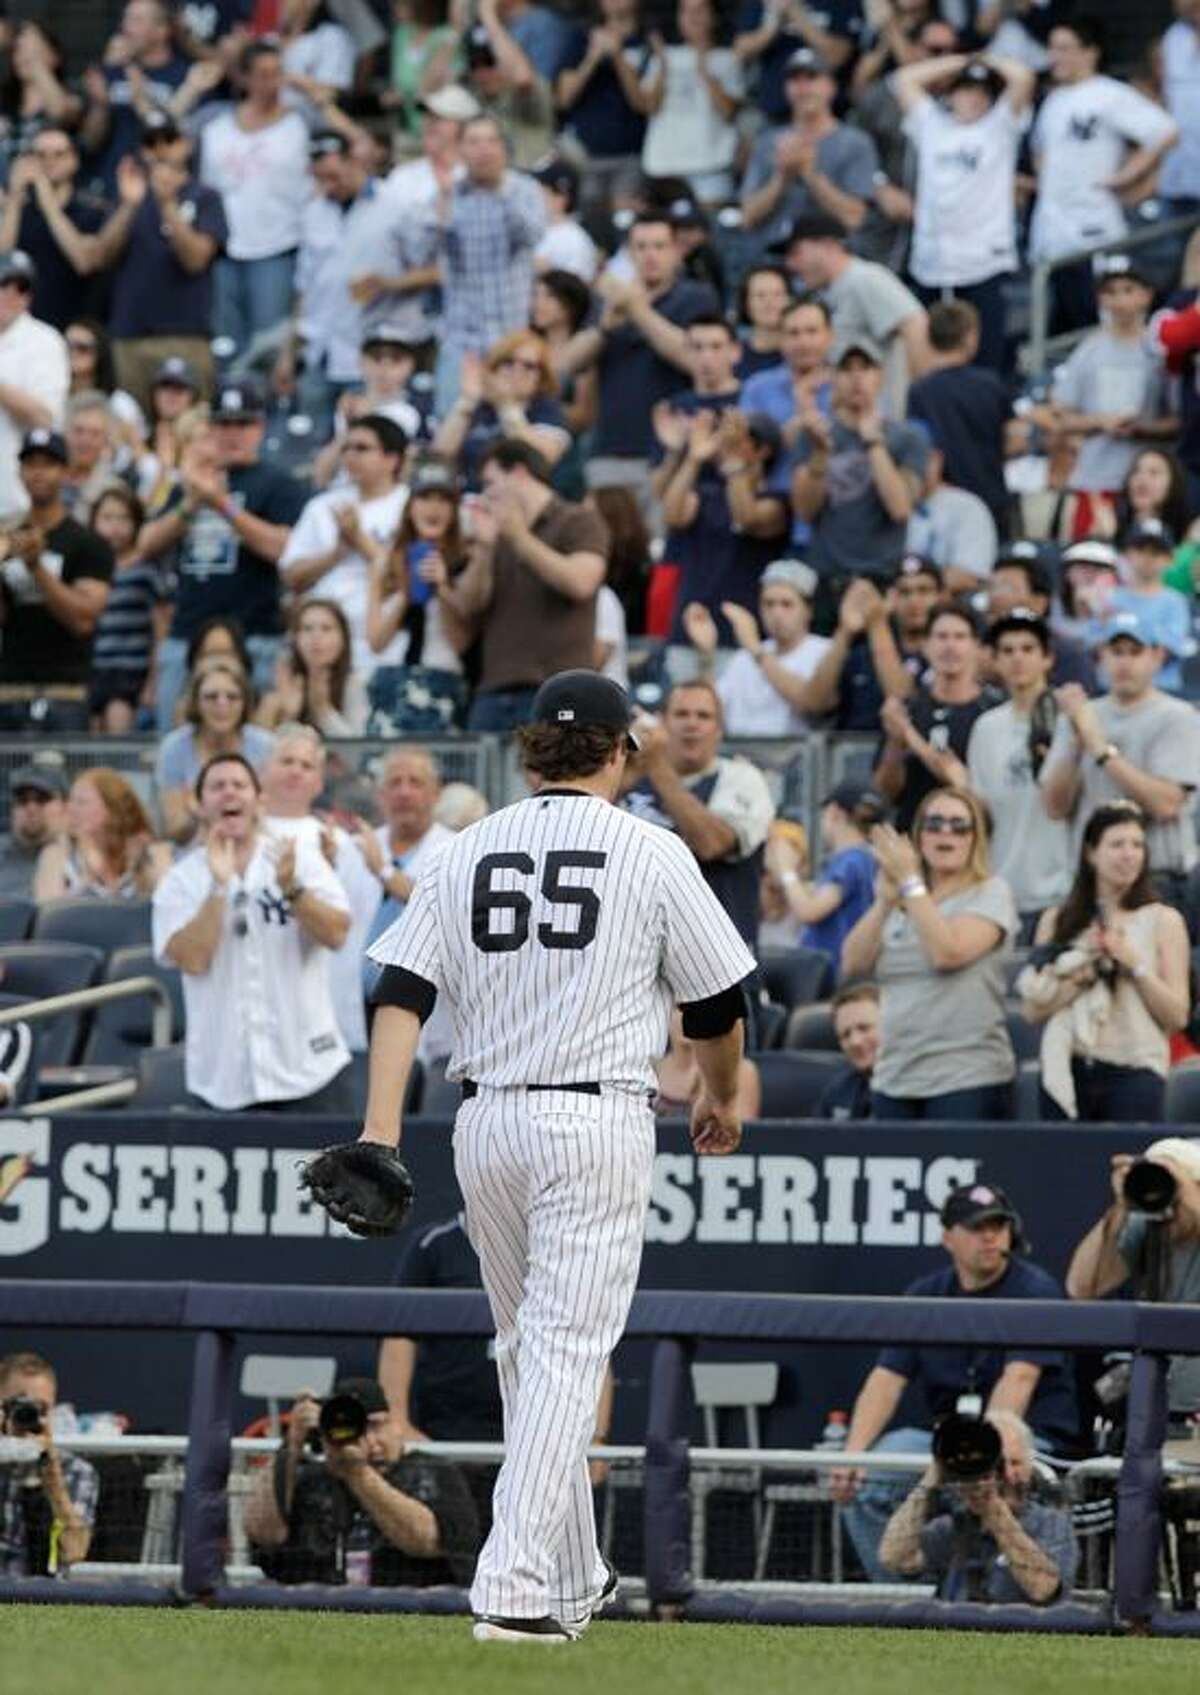 New York Yankees starting pitcher Phil Hughes is cheered by fans as he leaves a baseball game against the Seattle Mariners in the eighth inning on Saturday, May 12, 2012 in New York. The Yankees won the game 6-2. (AP PhotoPeter Morgan)